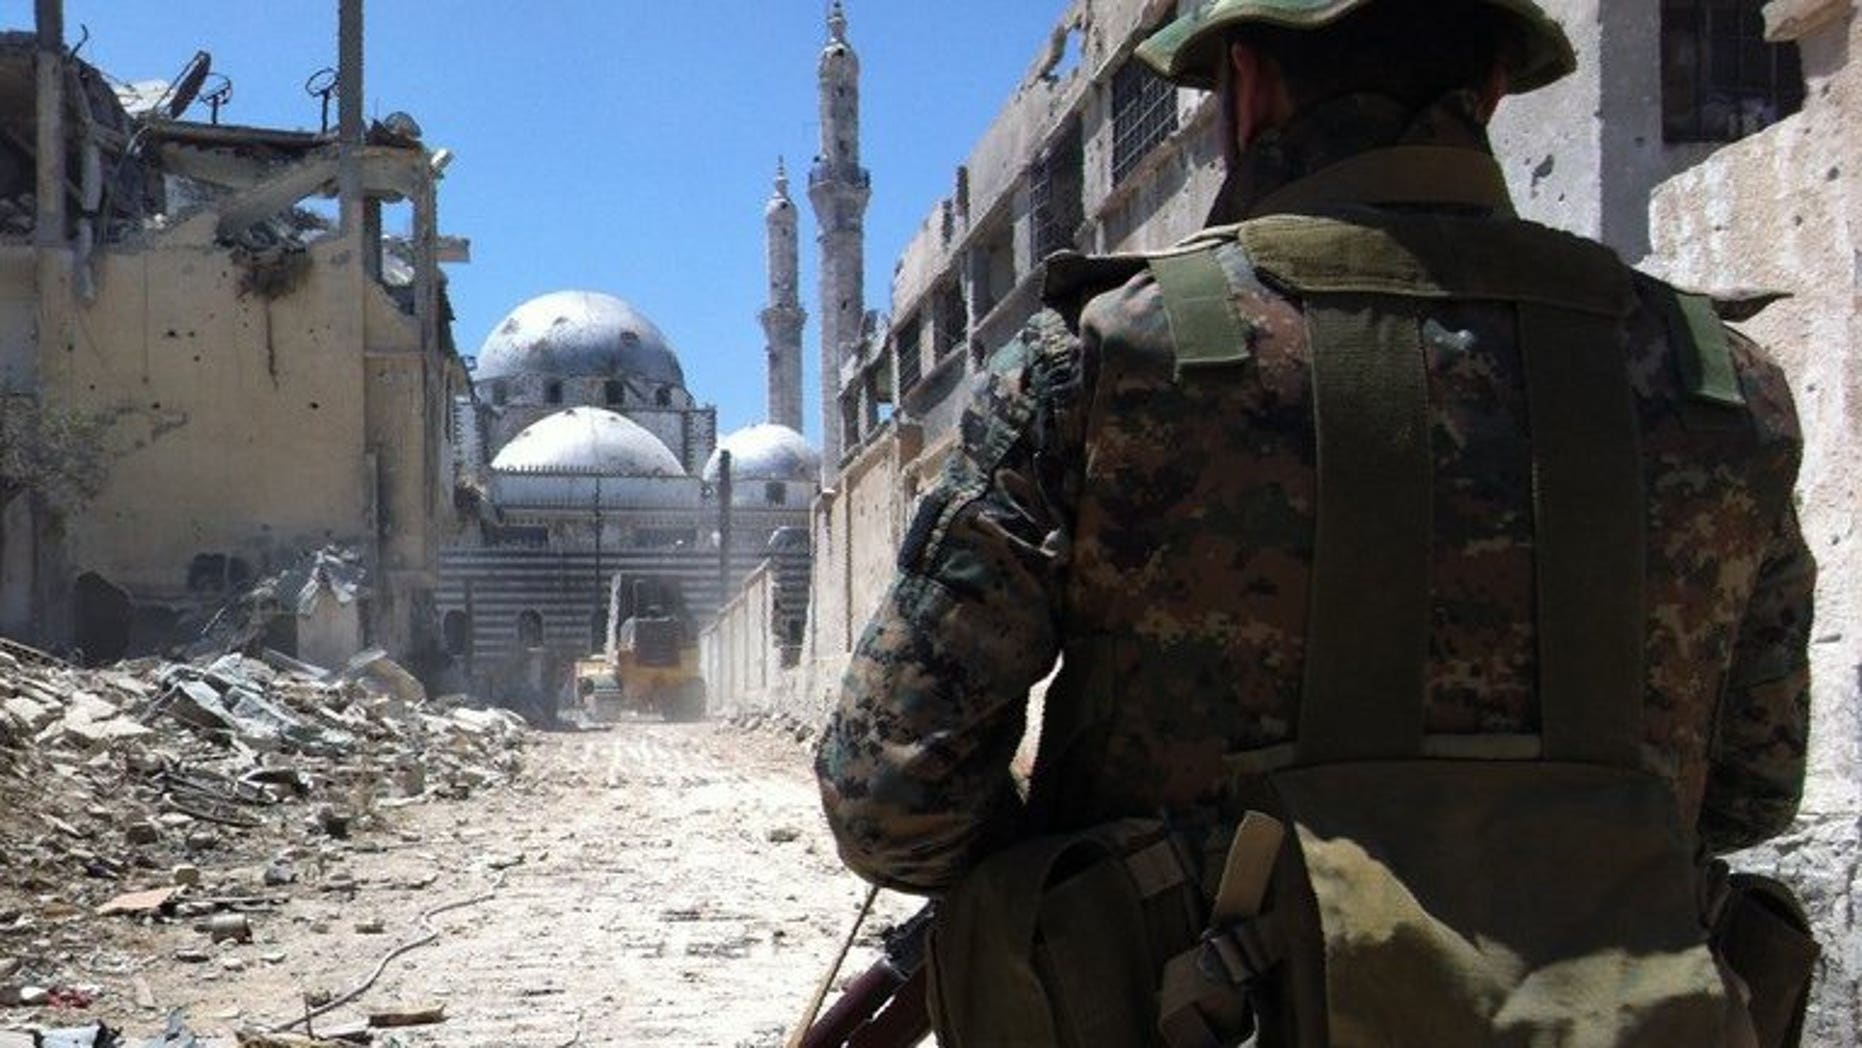 A Syrian soldier stands in front of the damaged Khaled bin Walid mosque in the district of al-Khalidiyah in Homs, on July 29, 2013. Syrian troops backed by pro-regime militia have killed at least 15 people in a Sunni village in the central province of Hama, according to the Syrian Observatory for Human Rights.